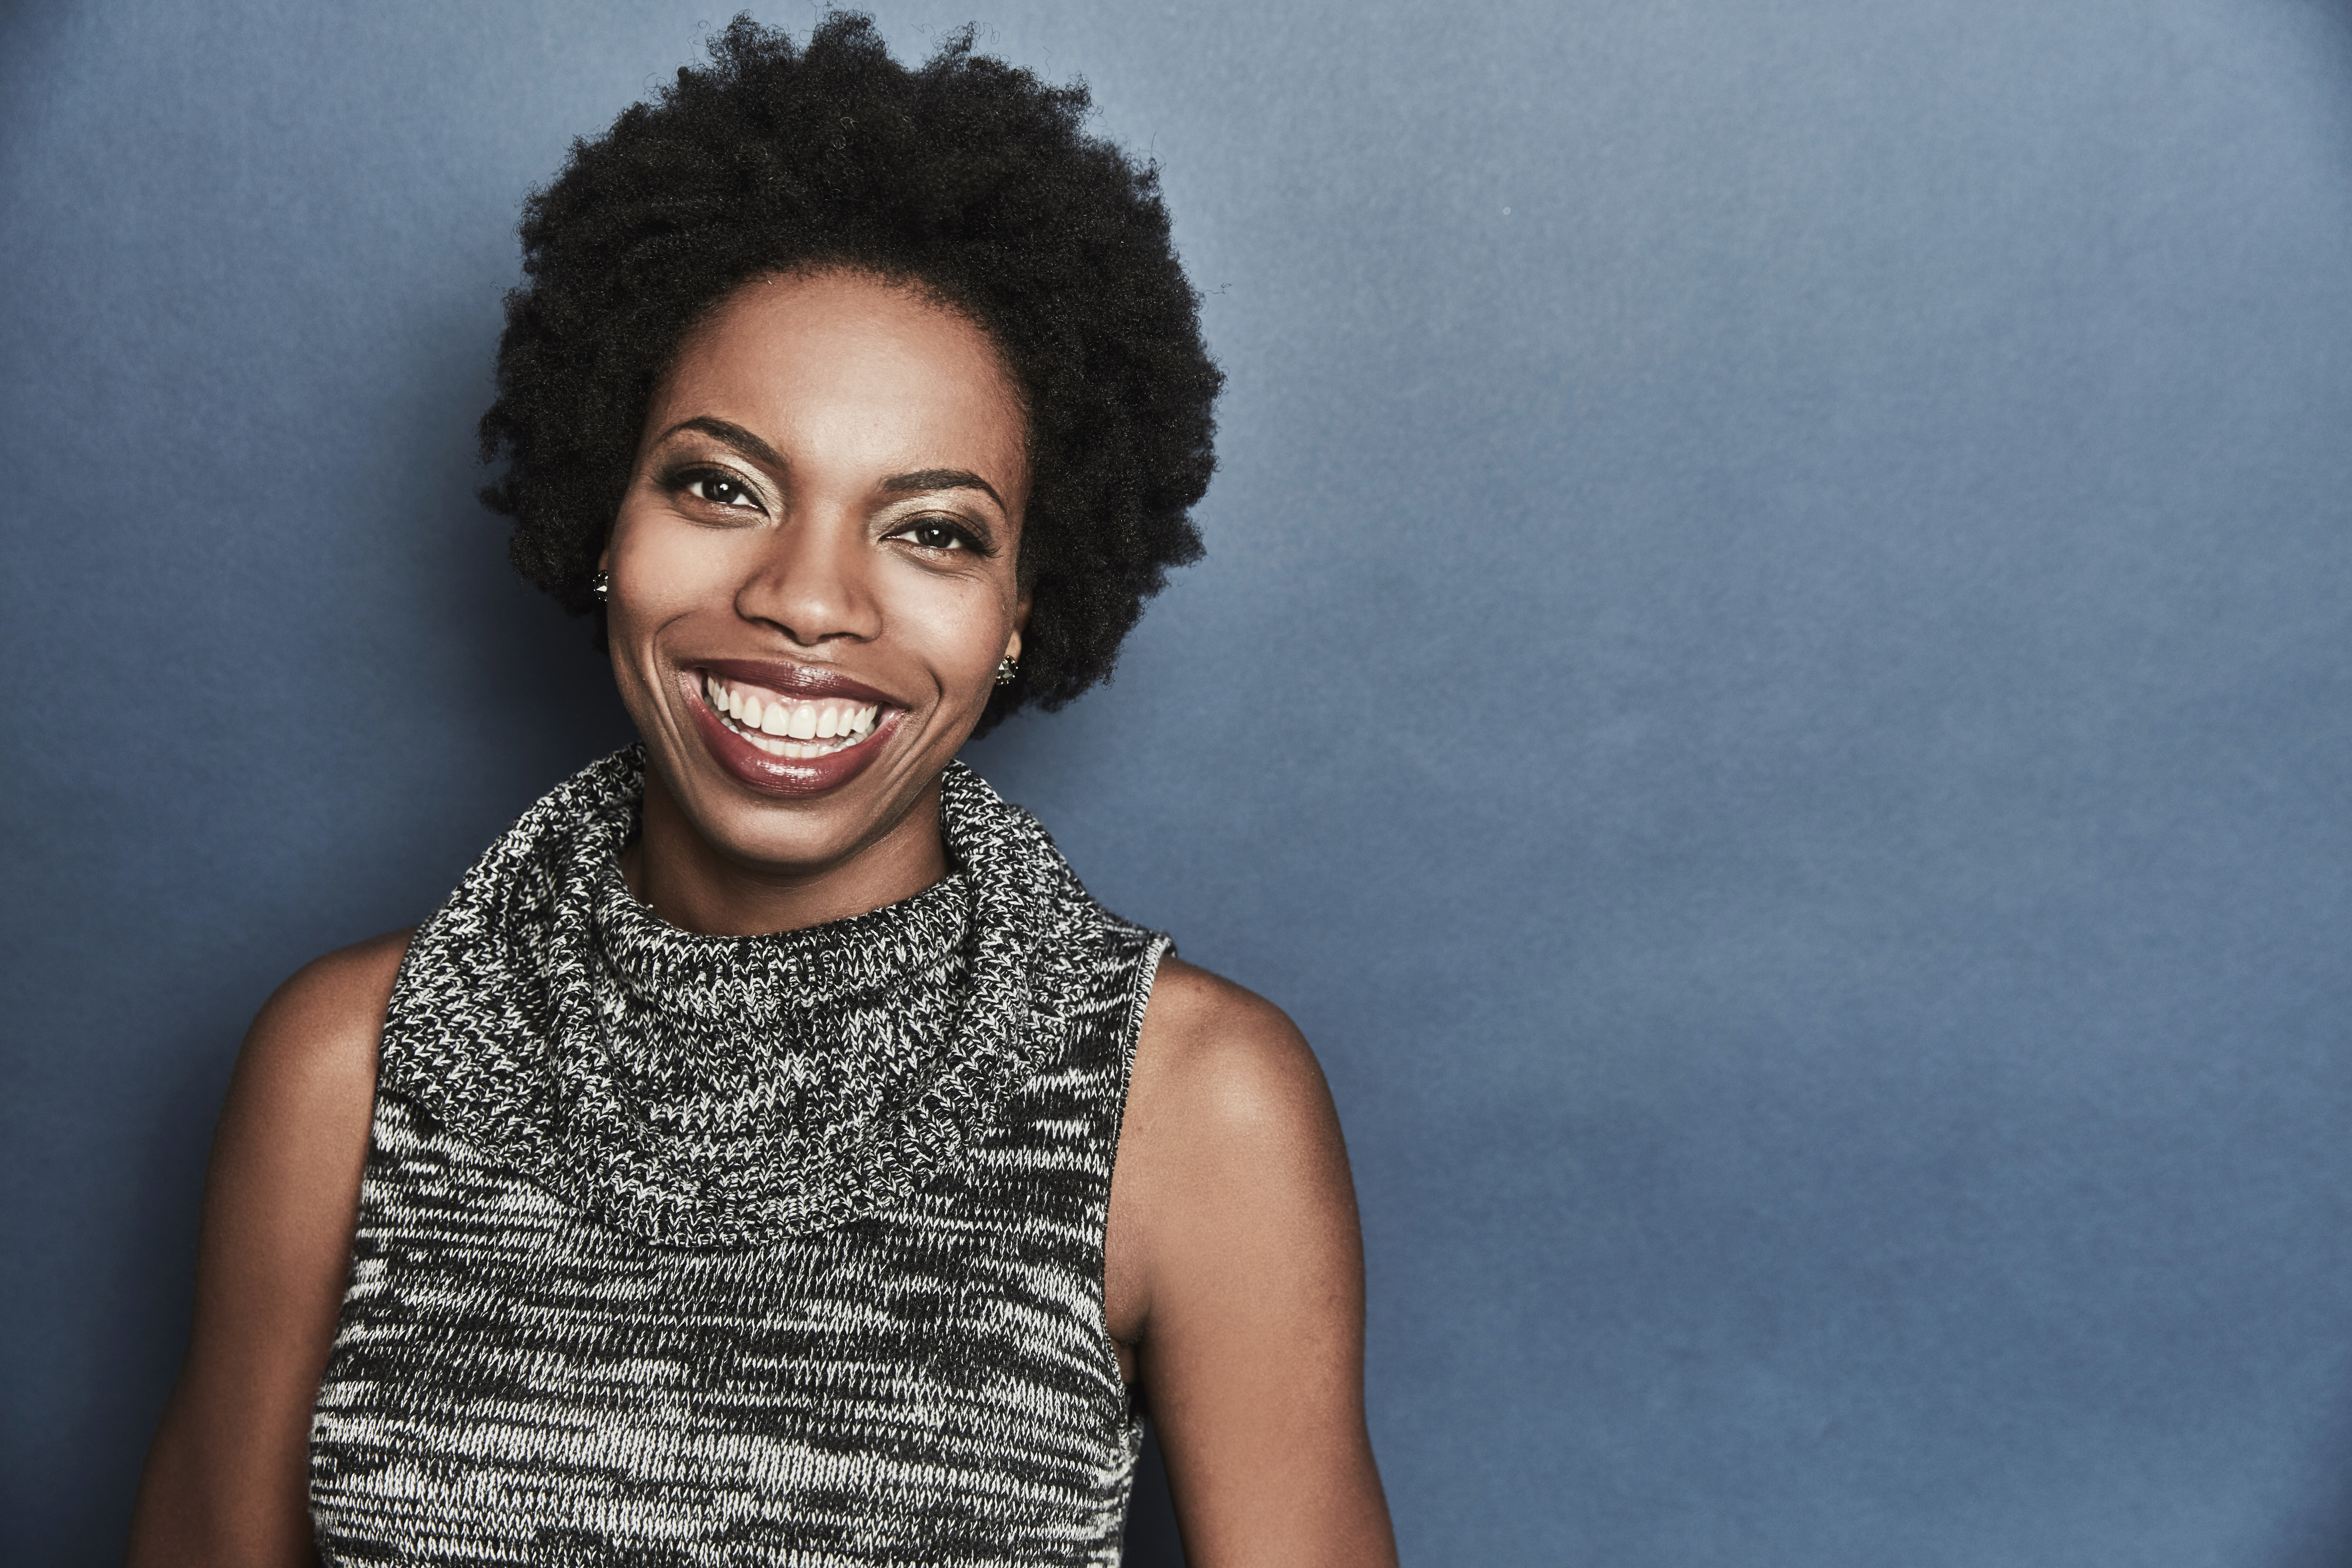 Sasheer Zamata of the film 'Deidra & Laney Rob A Train' poses for a portrait at the 2017 Sundance Film Festival Getty Images Portrait Studio presented by DIRECTV on January 23, 2017 in Park City, Utah.